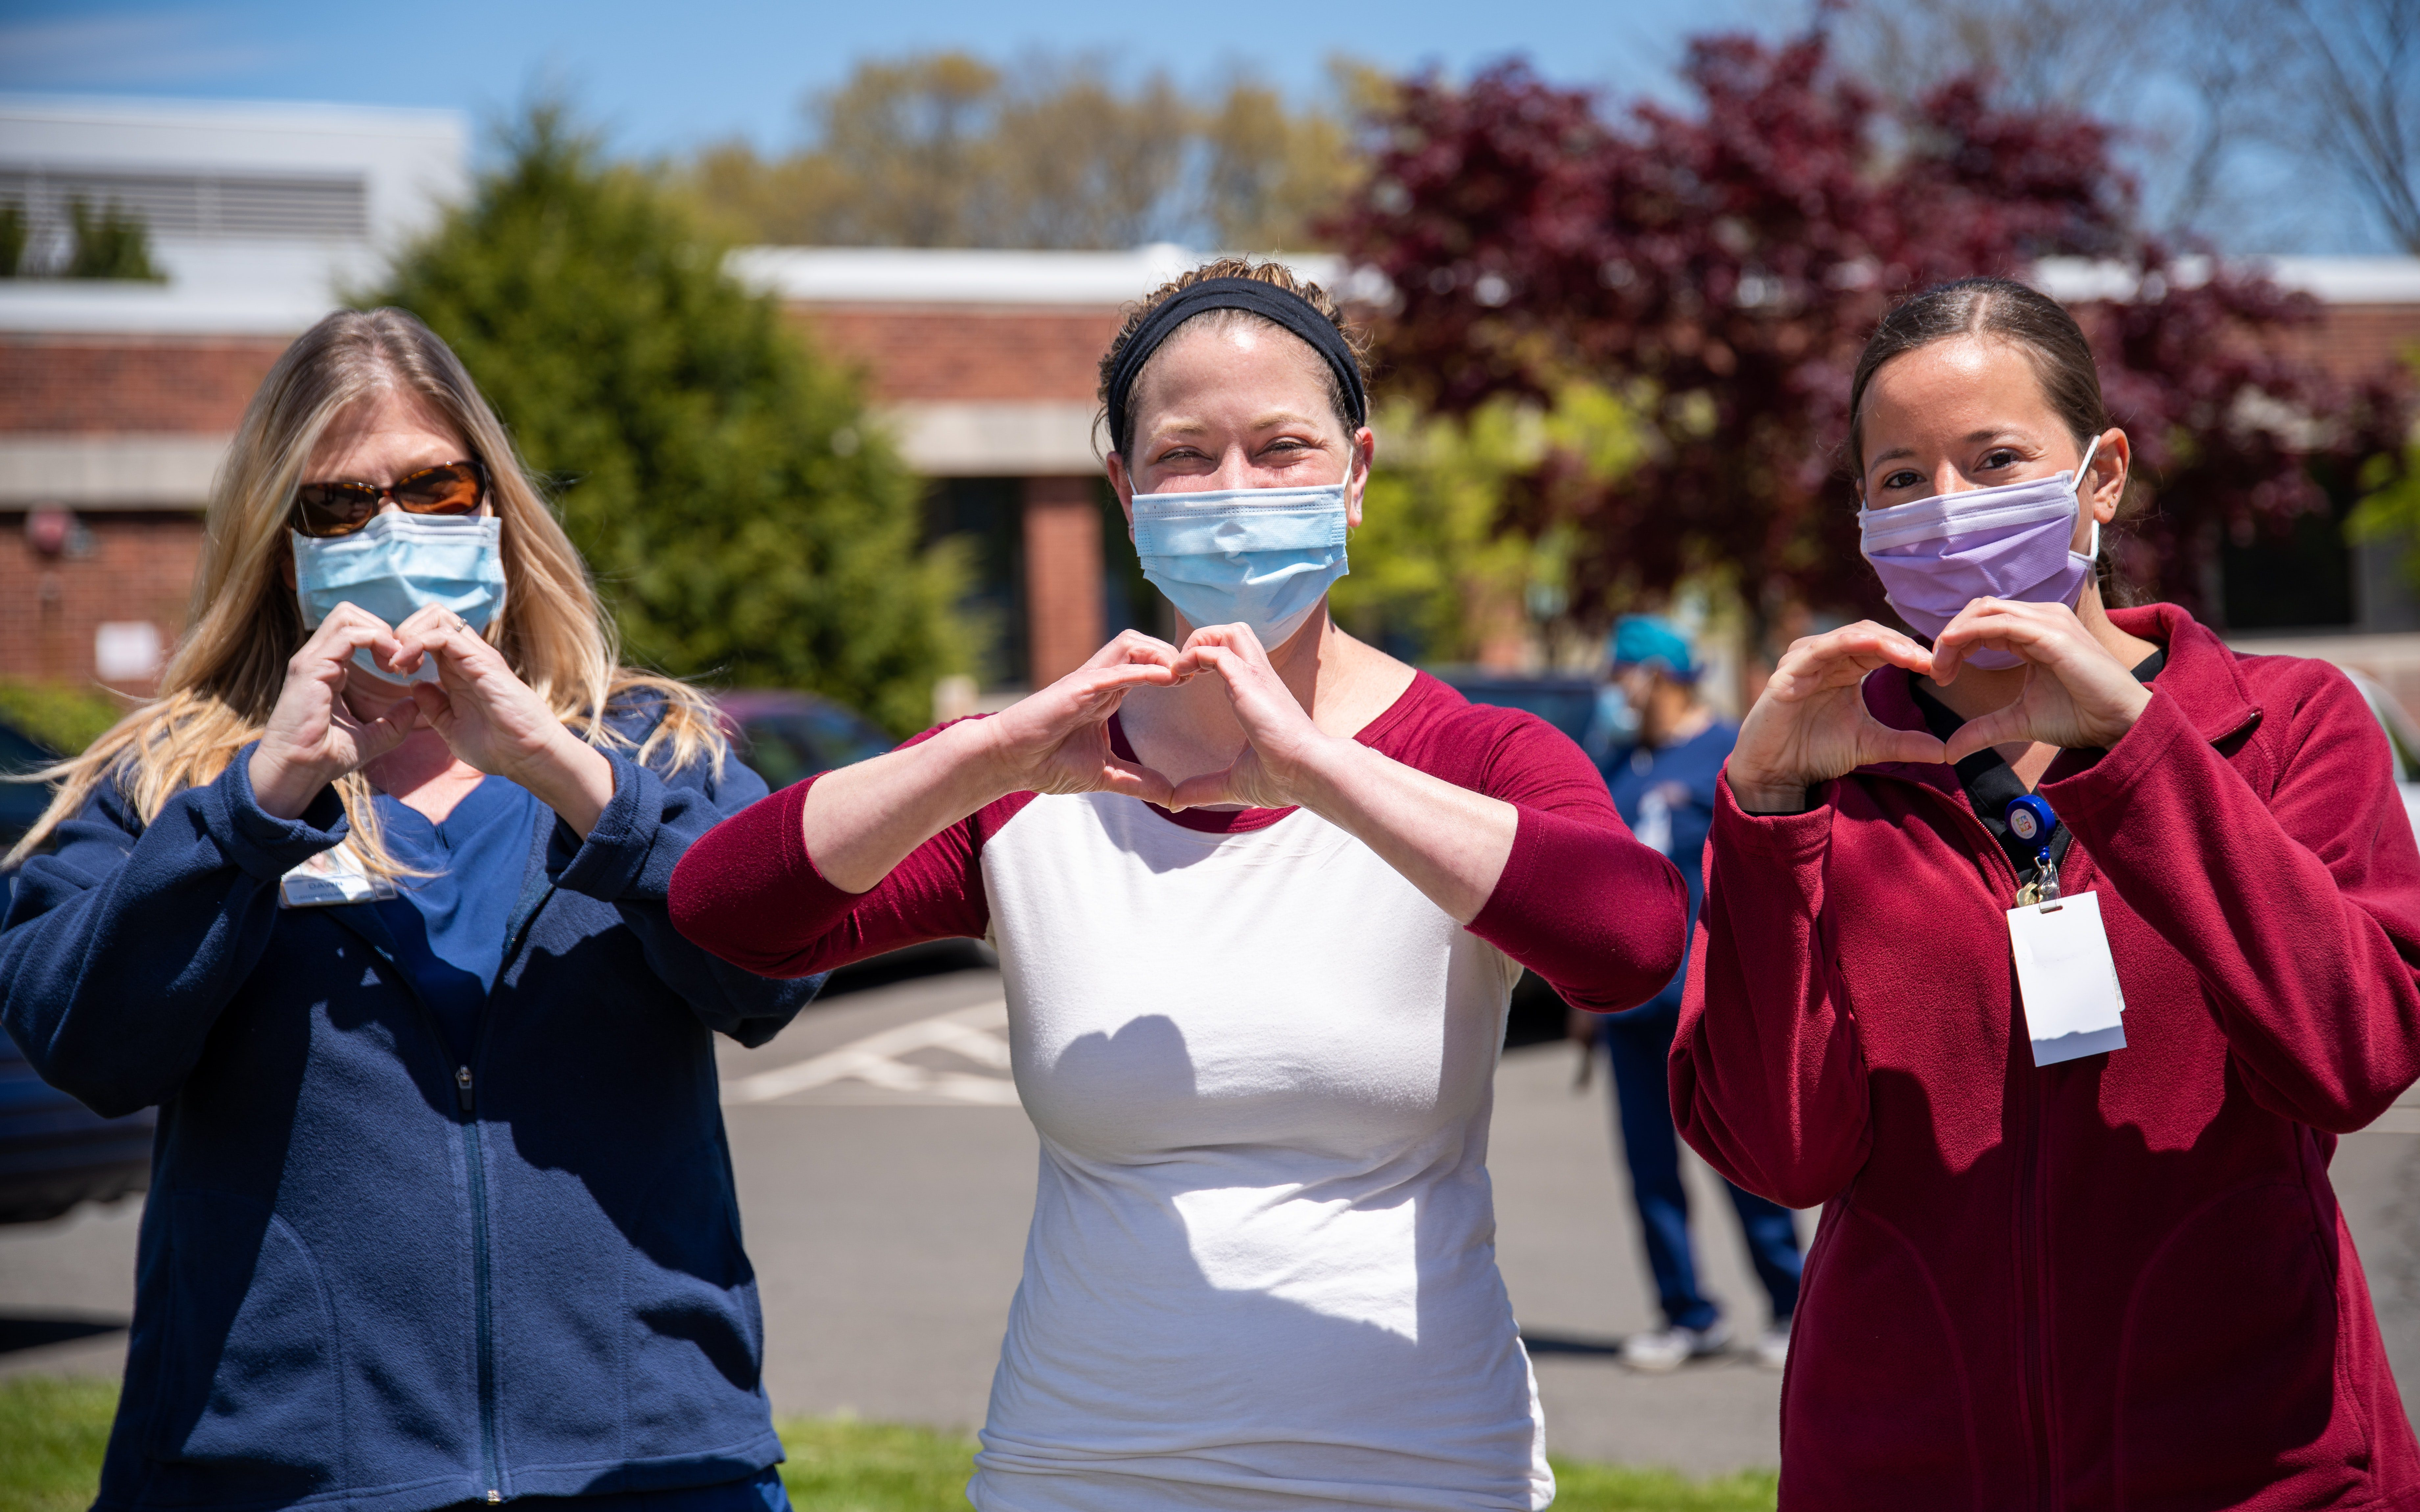 Health Care Workers & COVID-19